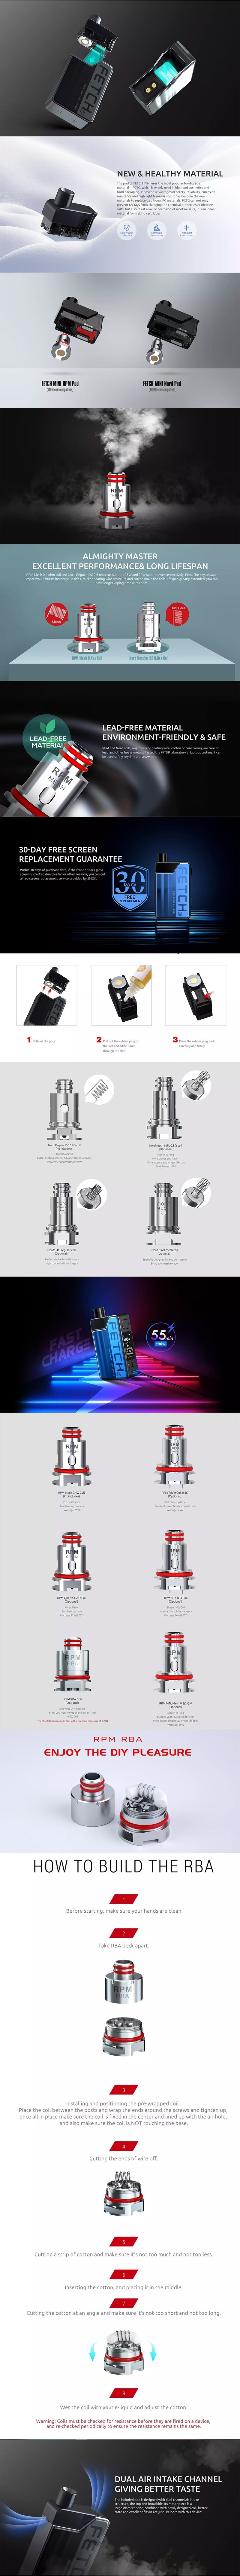 SMOKTech SMOK Fetch Mini 40W 1200mAh VW Box Mod Pod System Vape Starter Kit